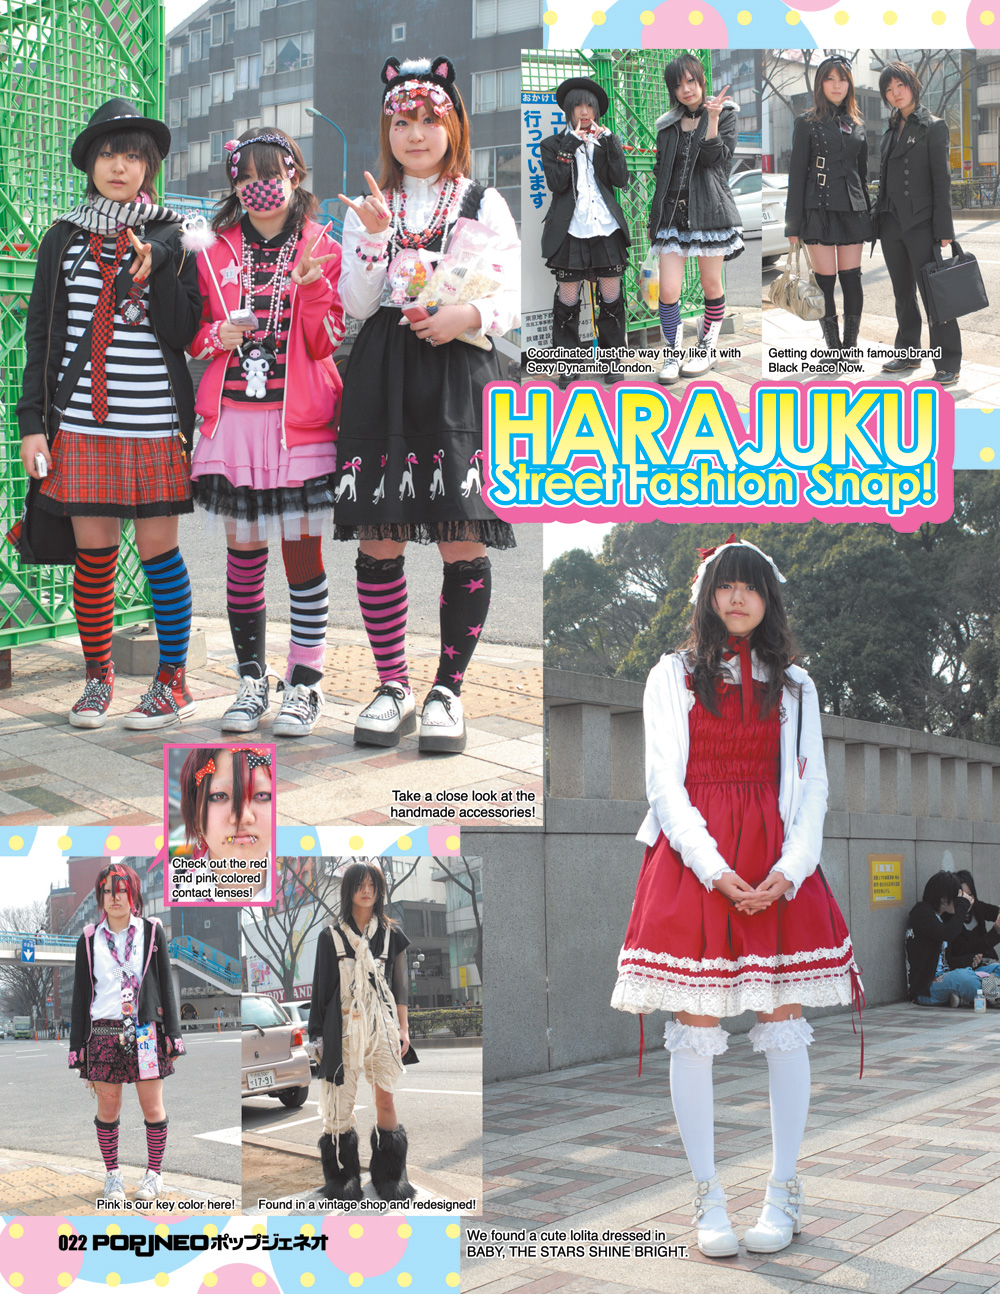 HARAJUKU Street Fashion Snap!